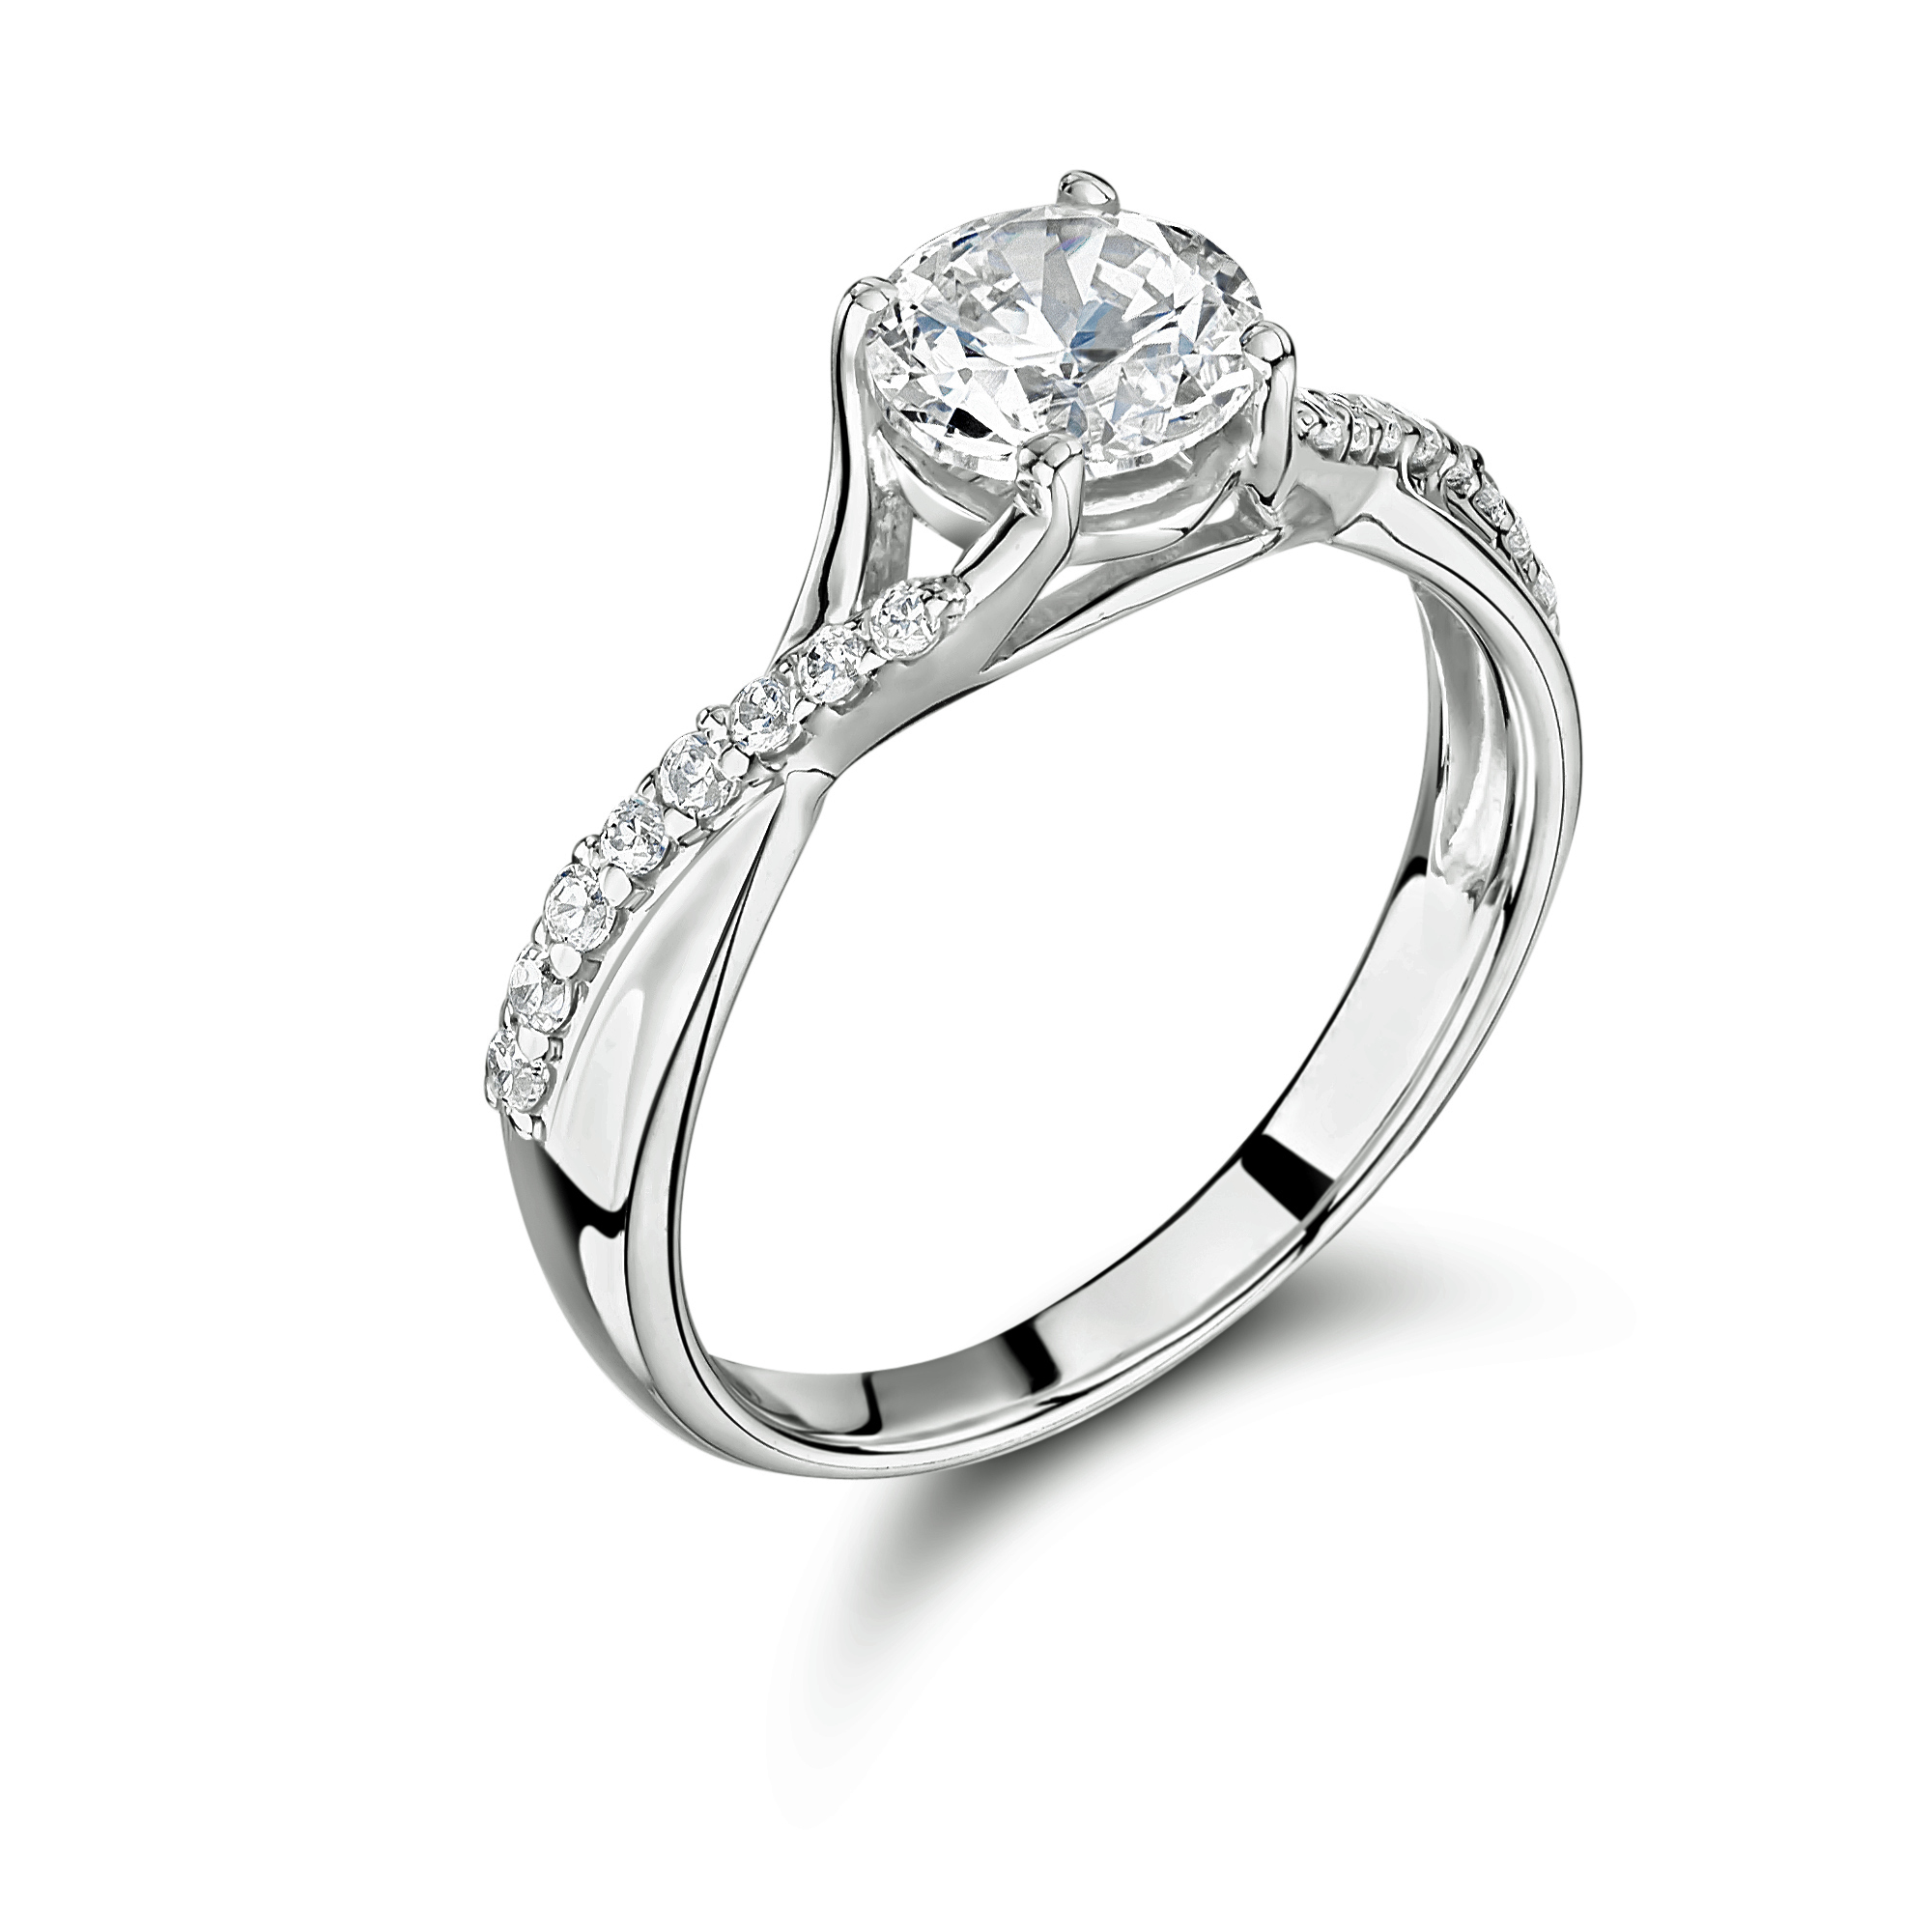 0.50ct 18ct White Gold Brilliant Cut Diamond Ring with Diamond Set Shoulders-0